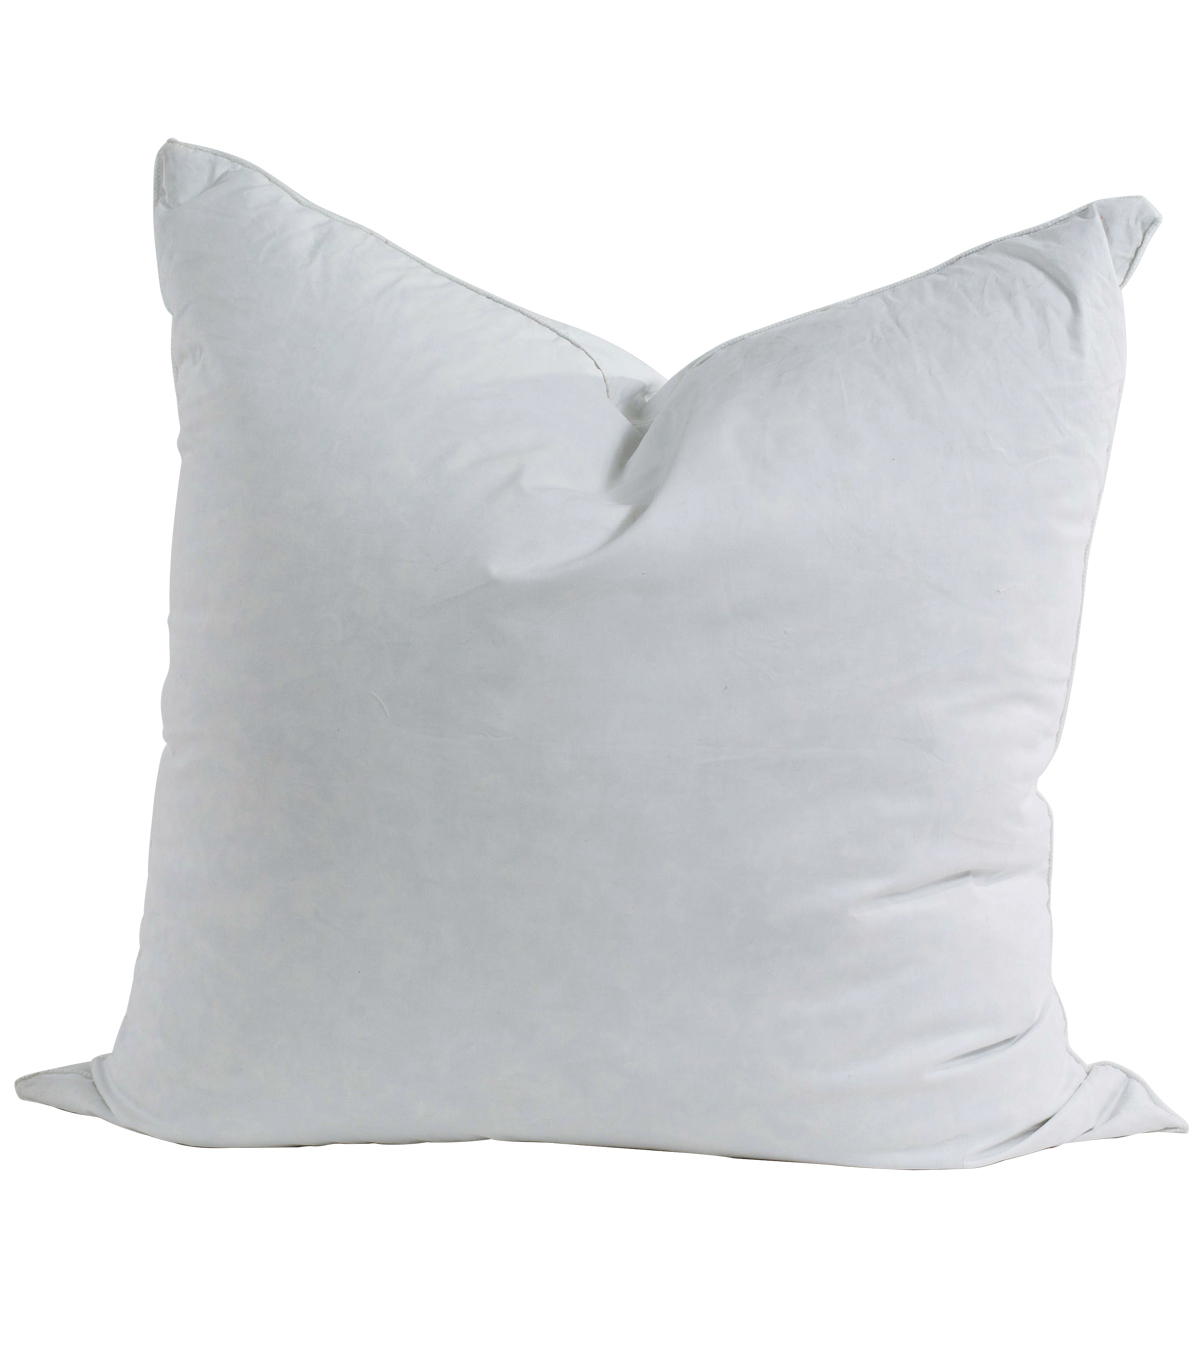 Feather-Fil 16\u0027\u0027x16\u0027\u0027 Luxurious Feather & Down Pillow Insert